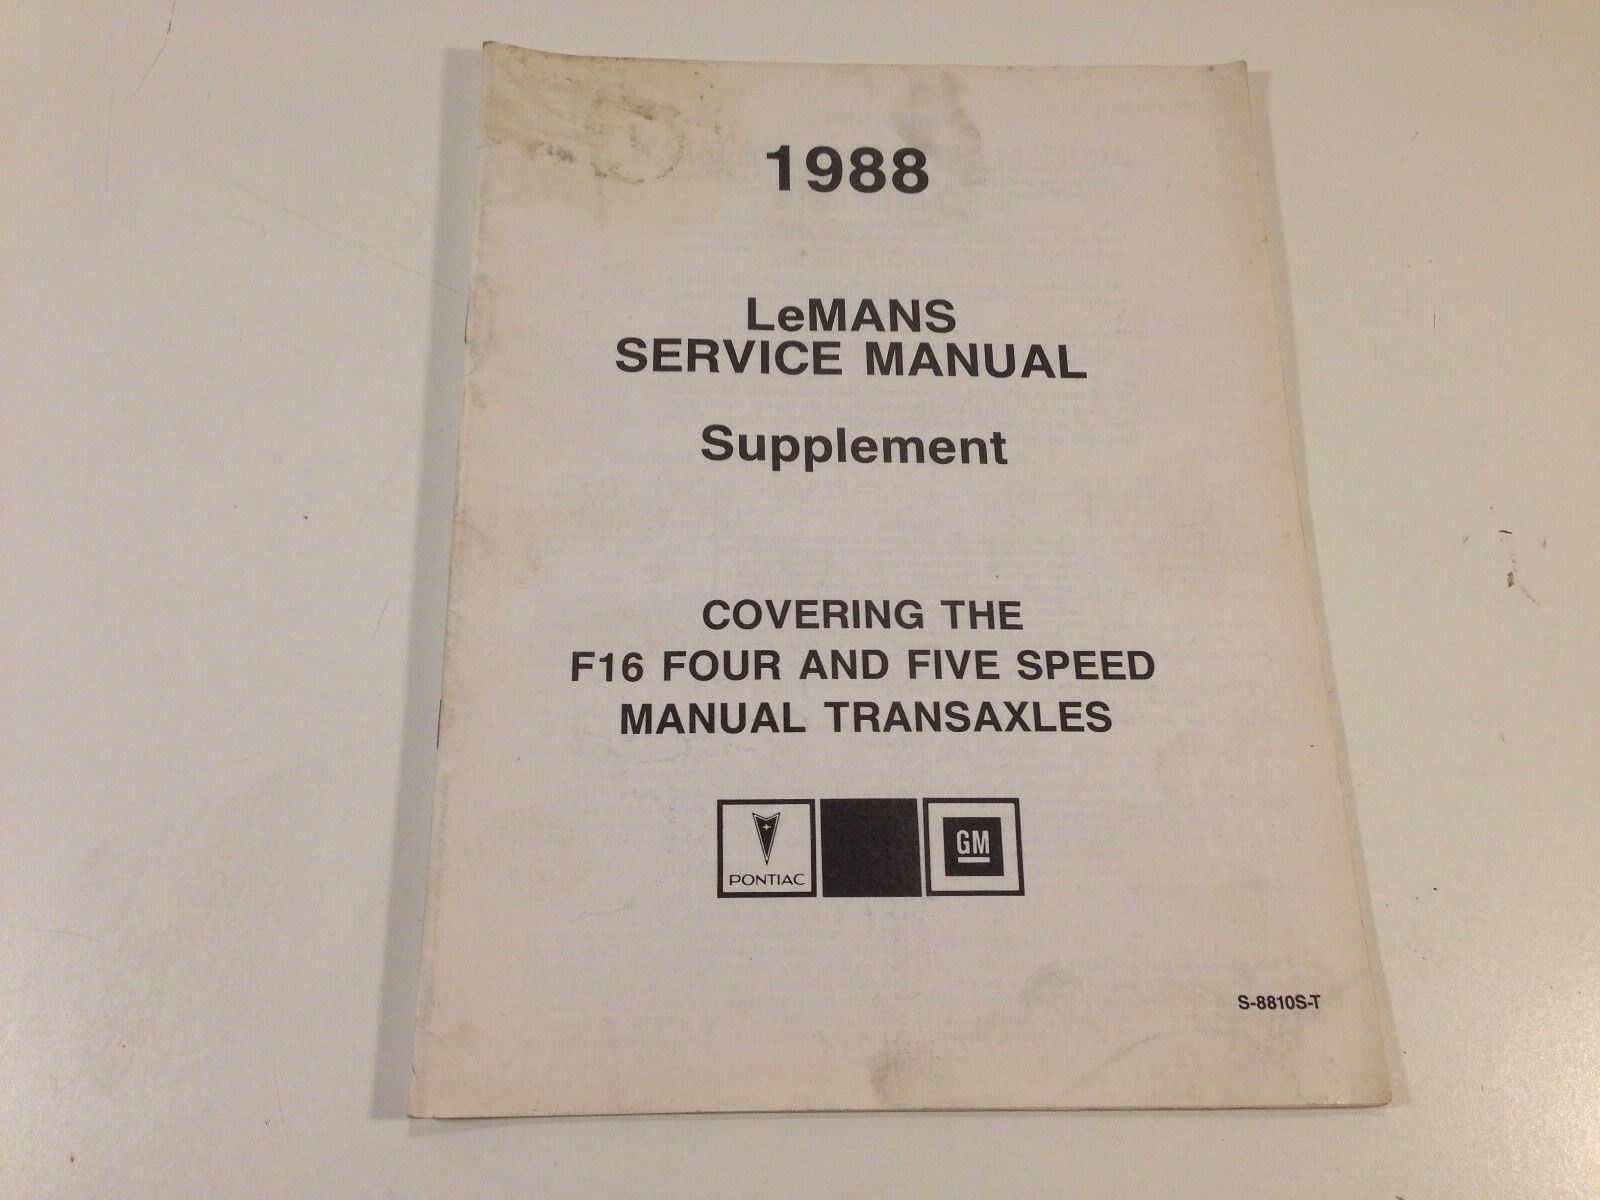 1988 Pontiac LeMans Shop Service Manual Supplement S-8810S-T F16 Four & Five Sp